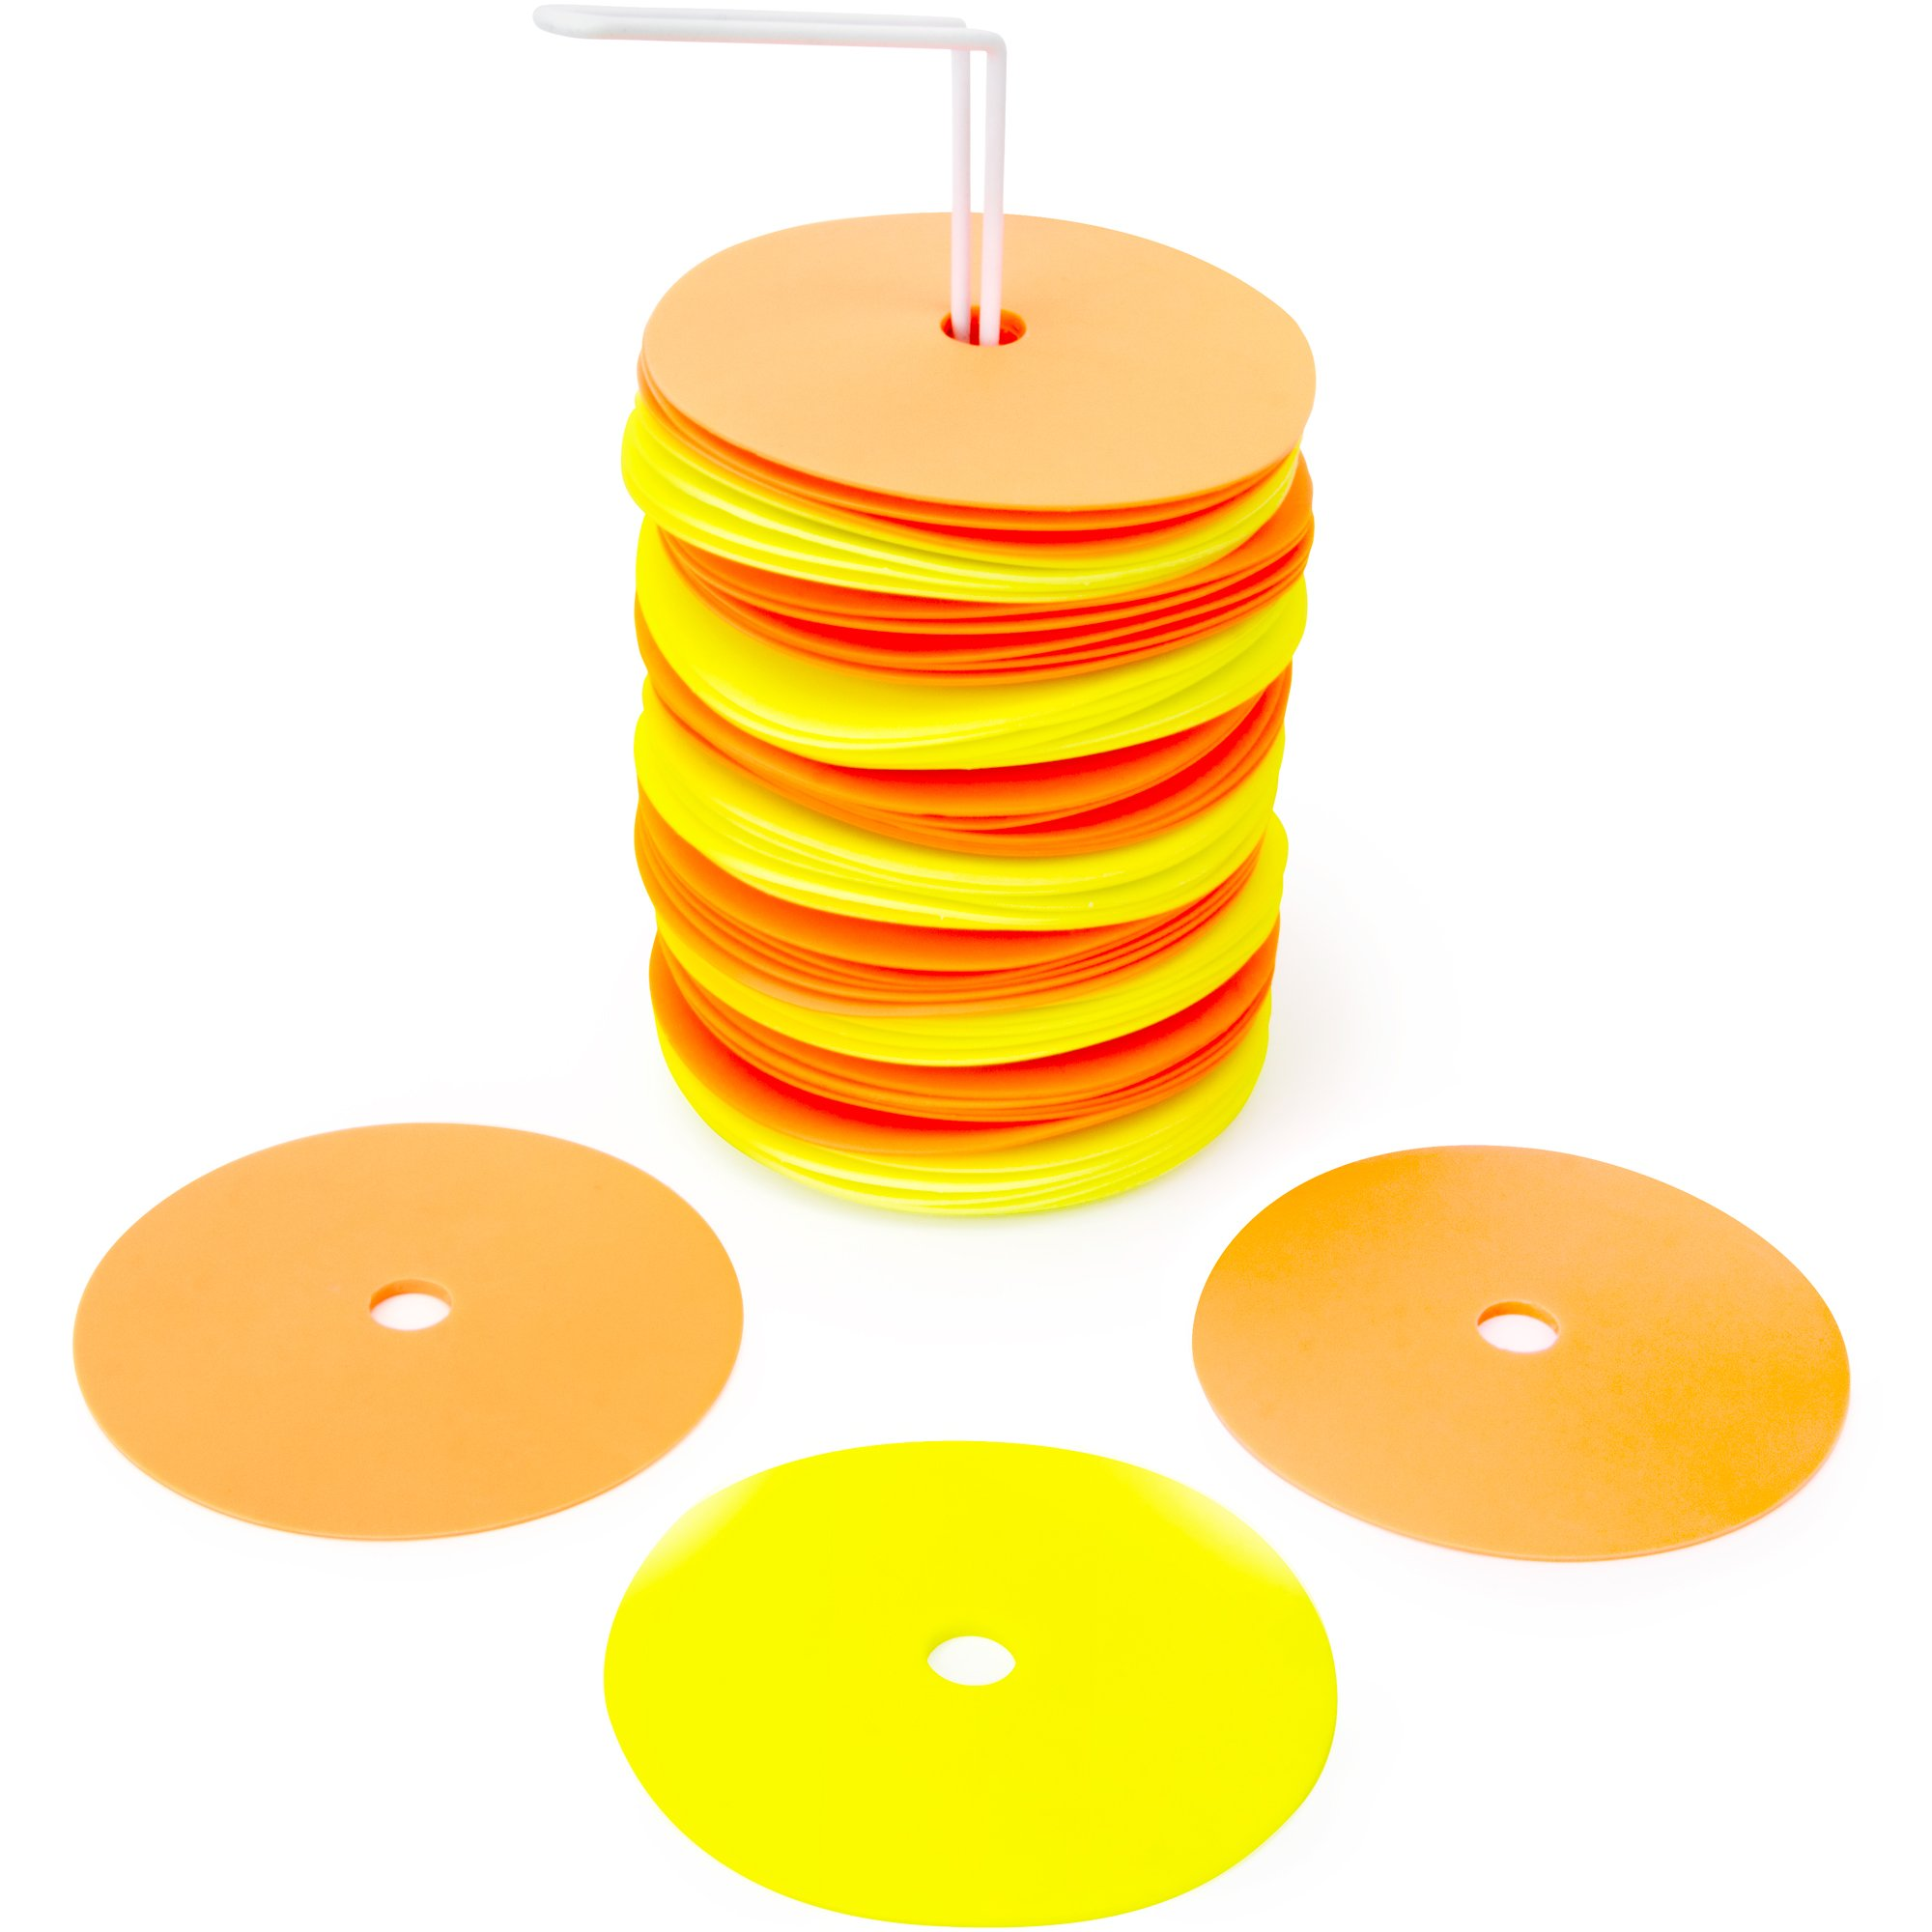 Crown Sporting Goods 6'' Non-Skid Floor Spot Markers: Set of 50 Agility Training Flat Field Cones in Fluorescent Yellow & Orange with Metal Carrying Stand by Crown Sporting Goods